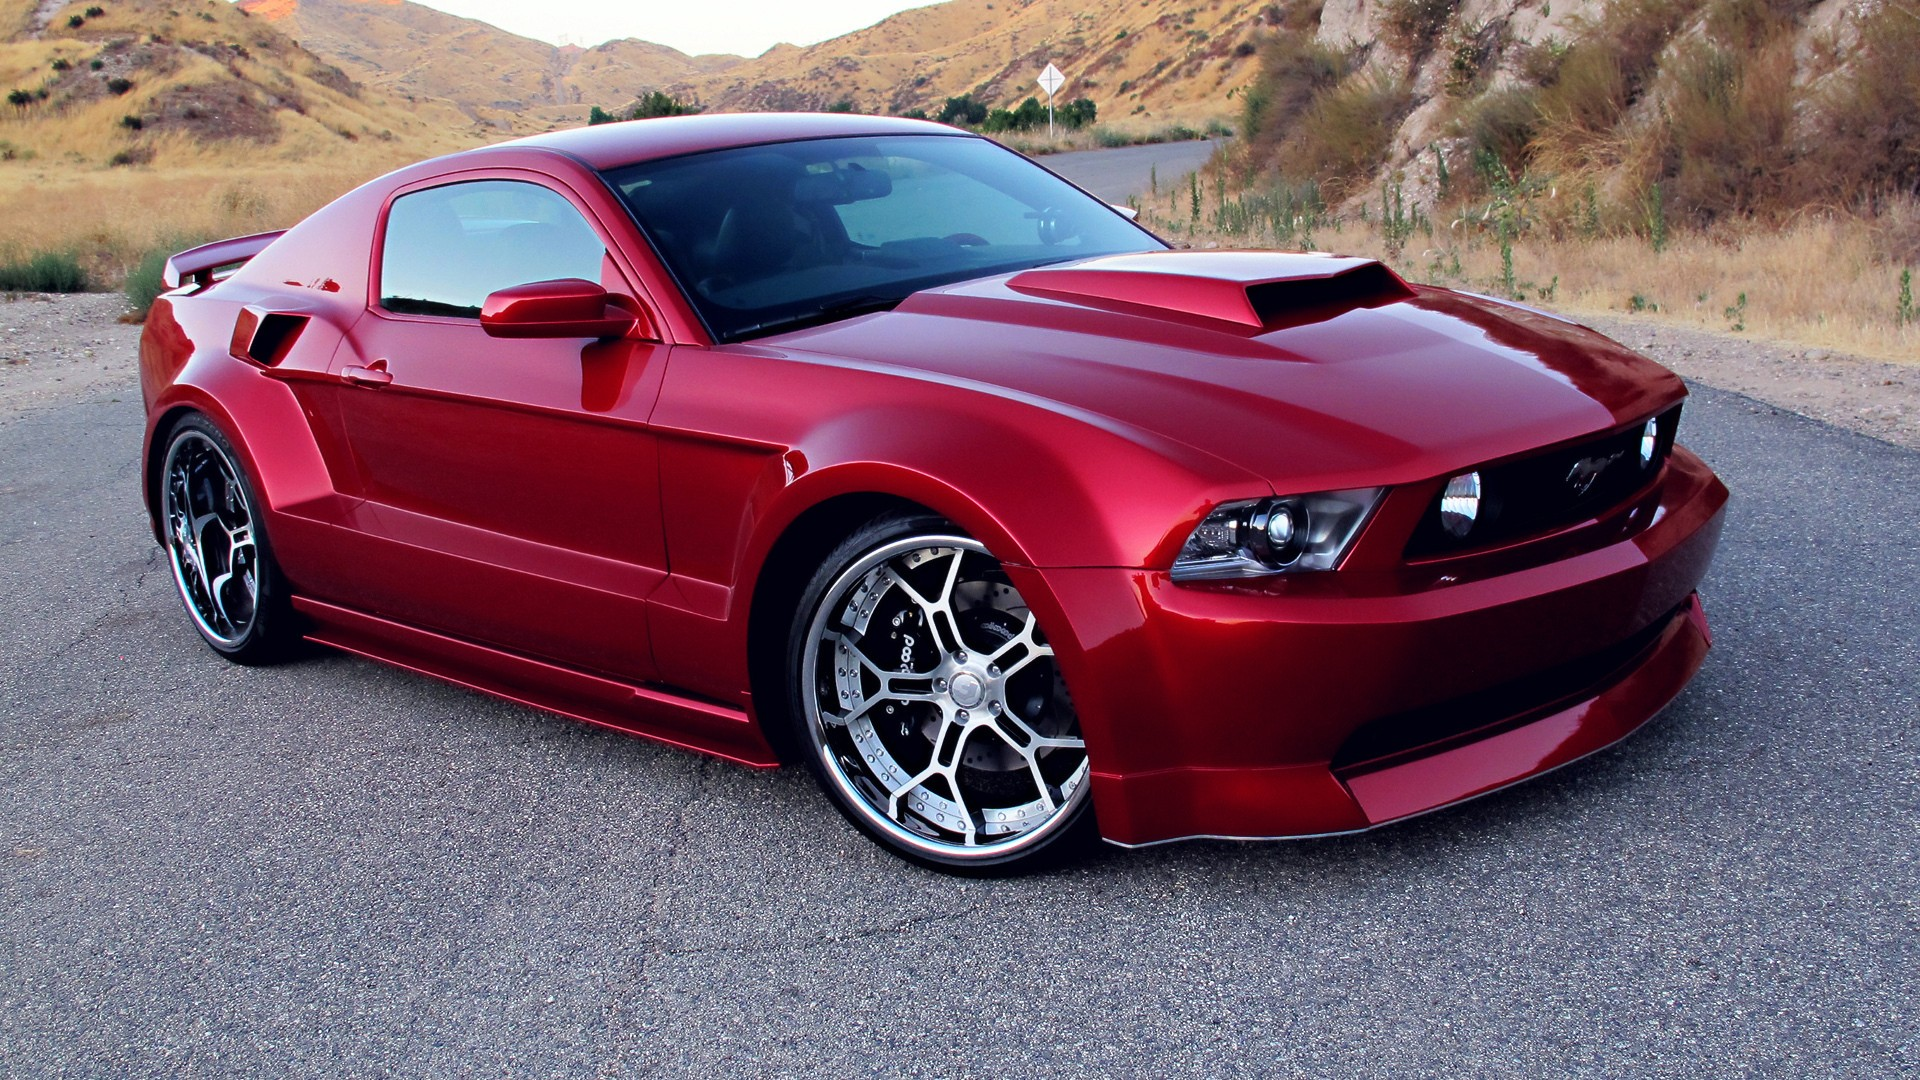 2012 FORD MUSTANG GT CUSTOM COUPE Full HD Fond d'écran and ...